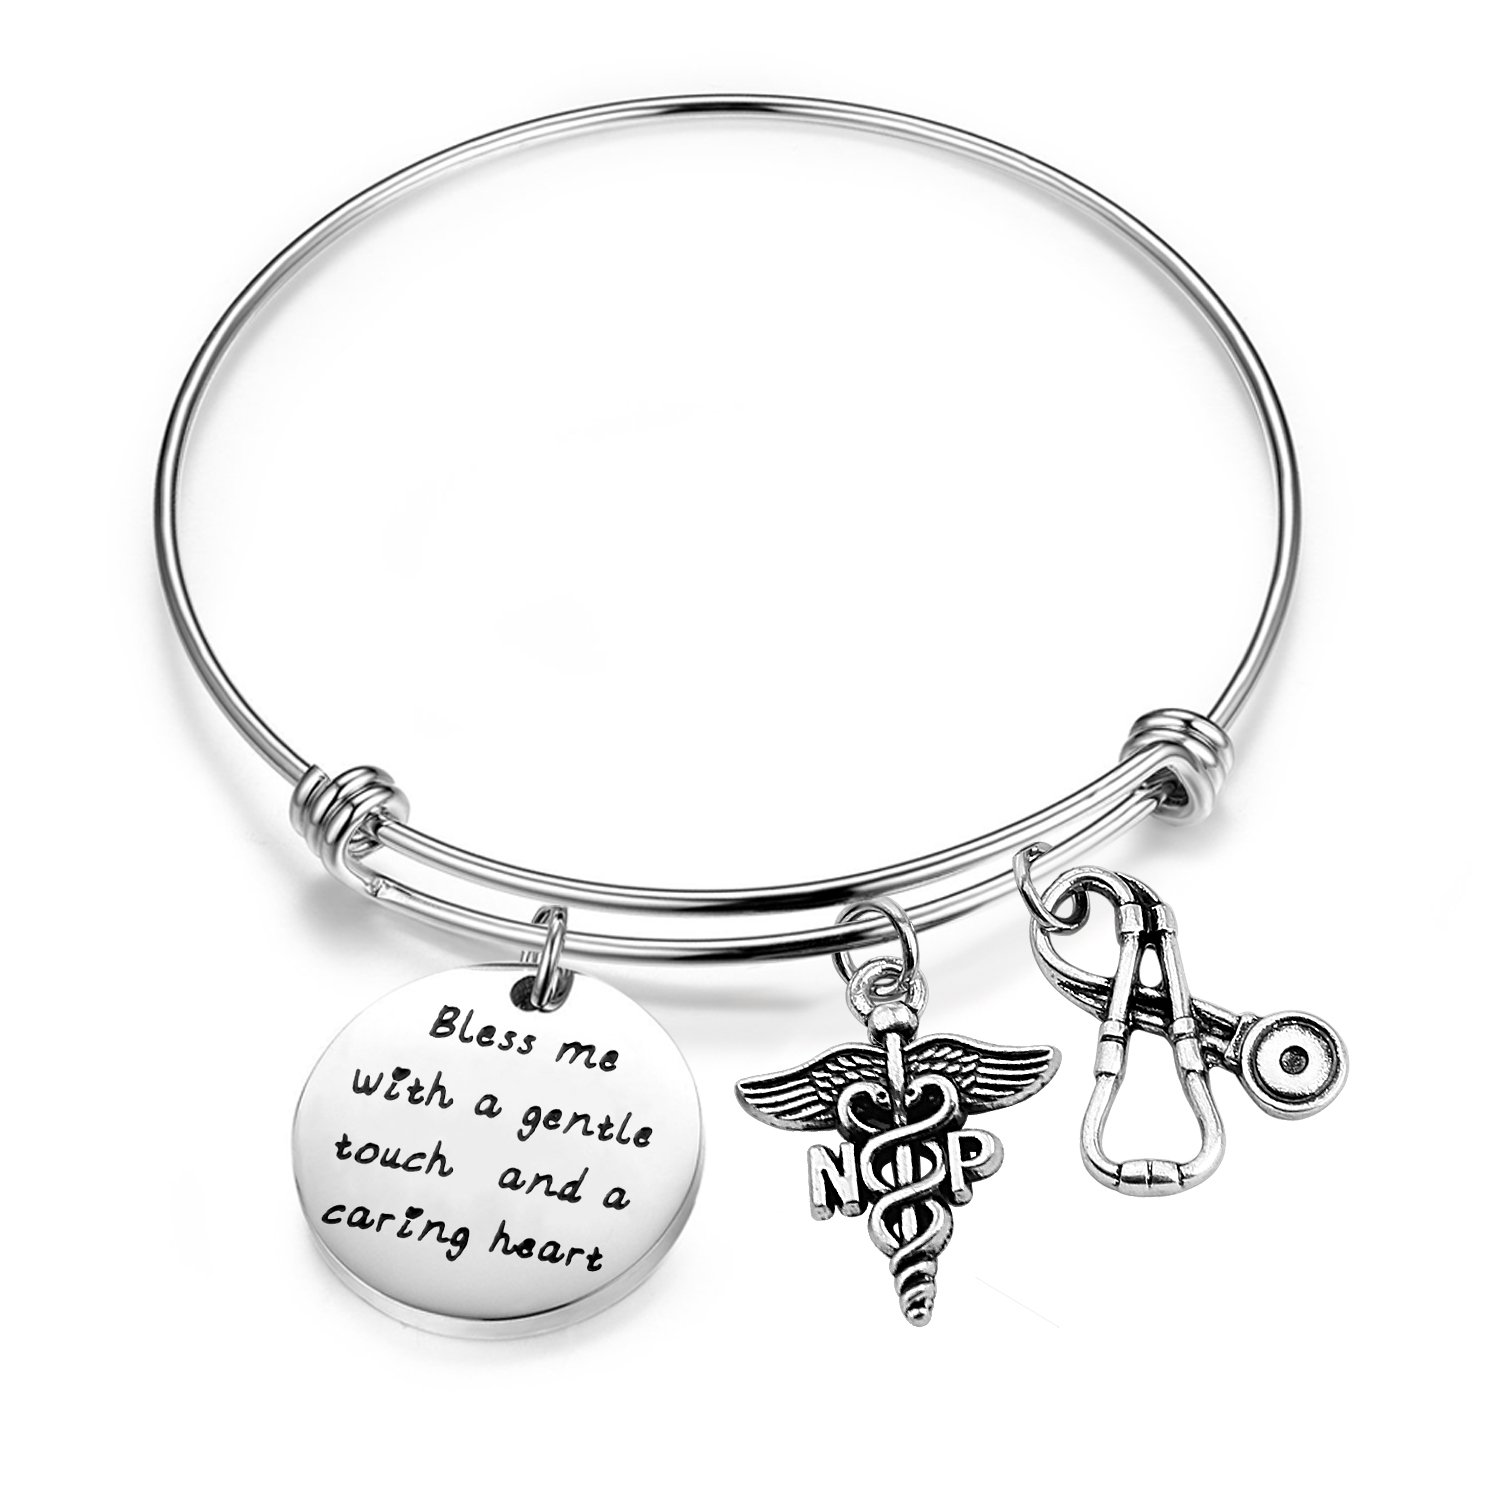 Gzrlyf NP Bracelet Nurse Practitioner Bracelet Bless Me With A Gentle Touch And A Caring Heart Charm Jewelry NP Graduation Gift (NP bracelet)